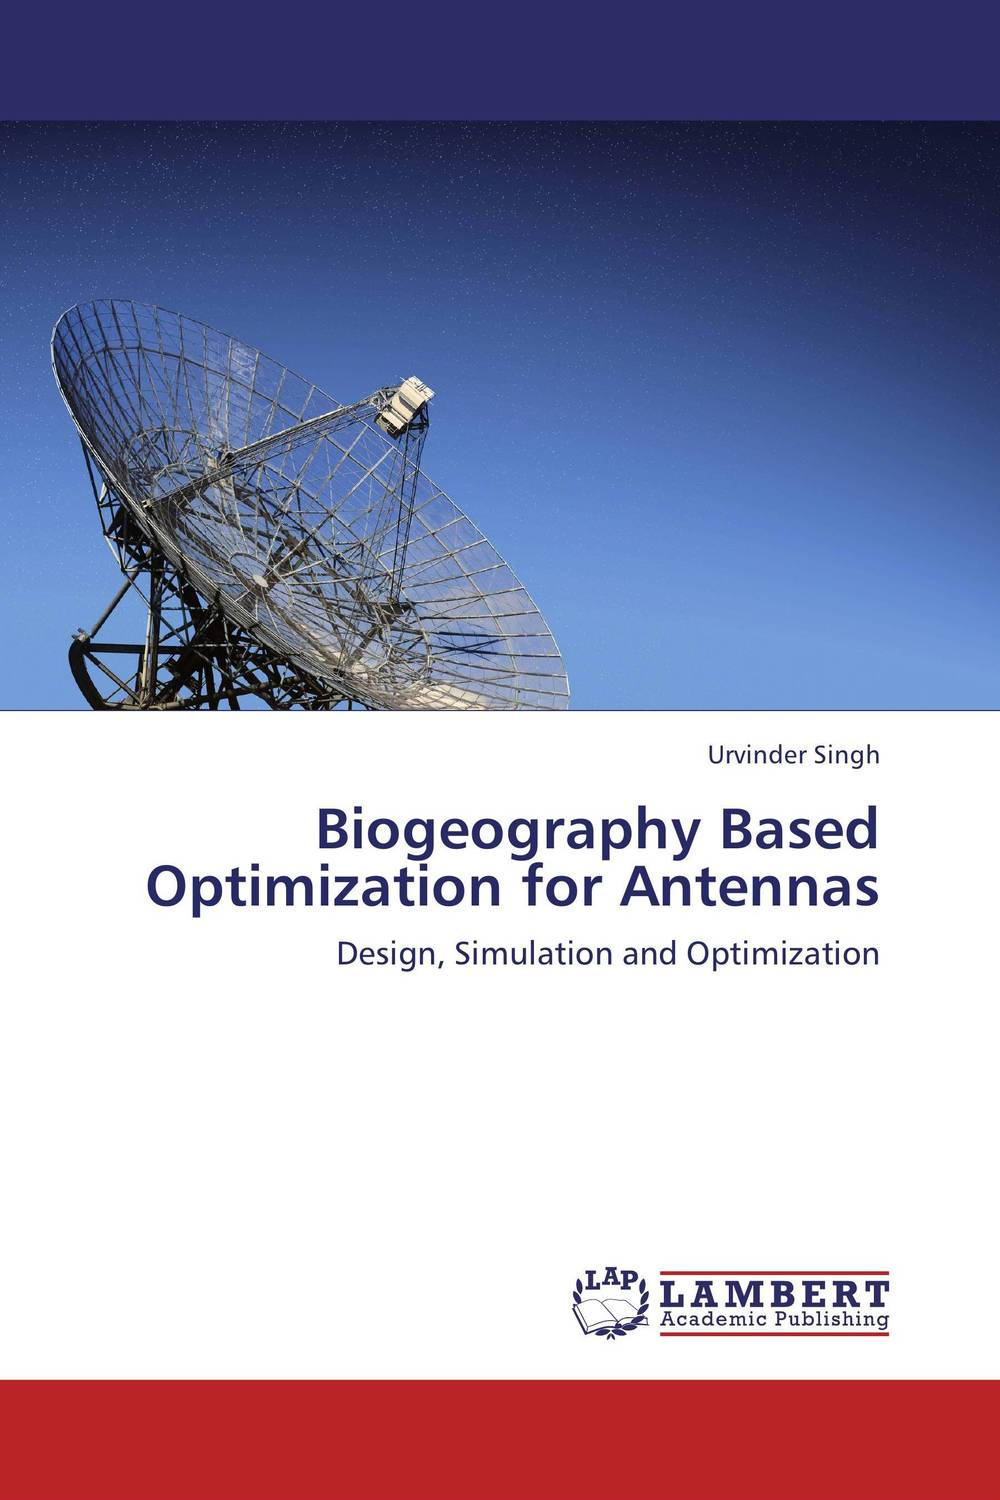 Biogeography Based Optimization for Antennas climatology and biogeography